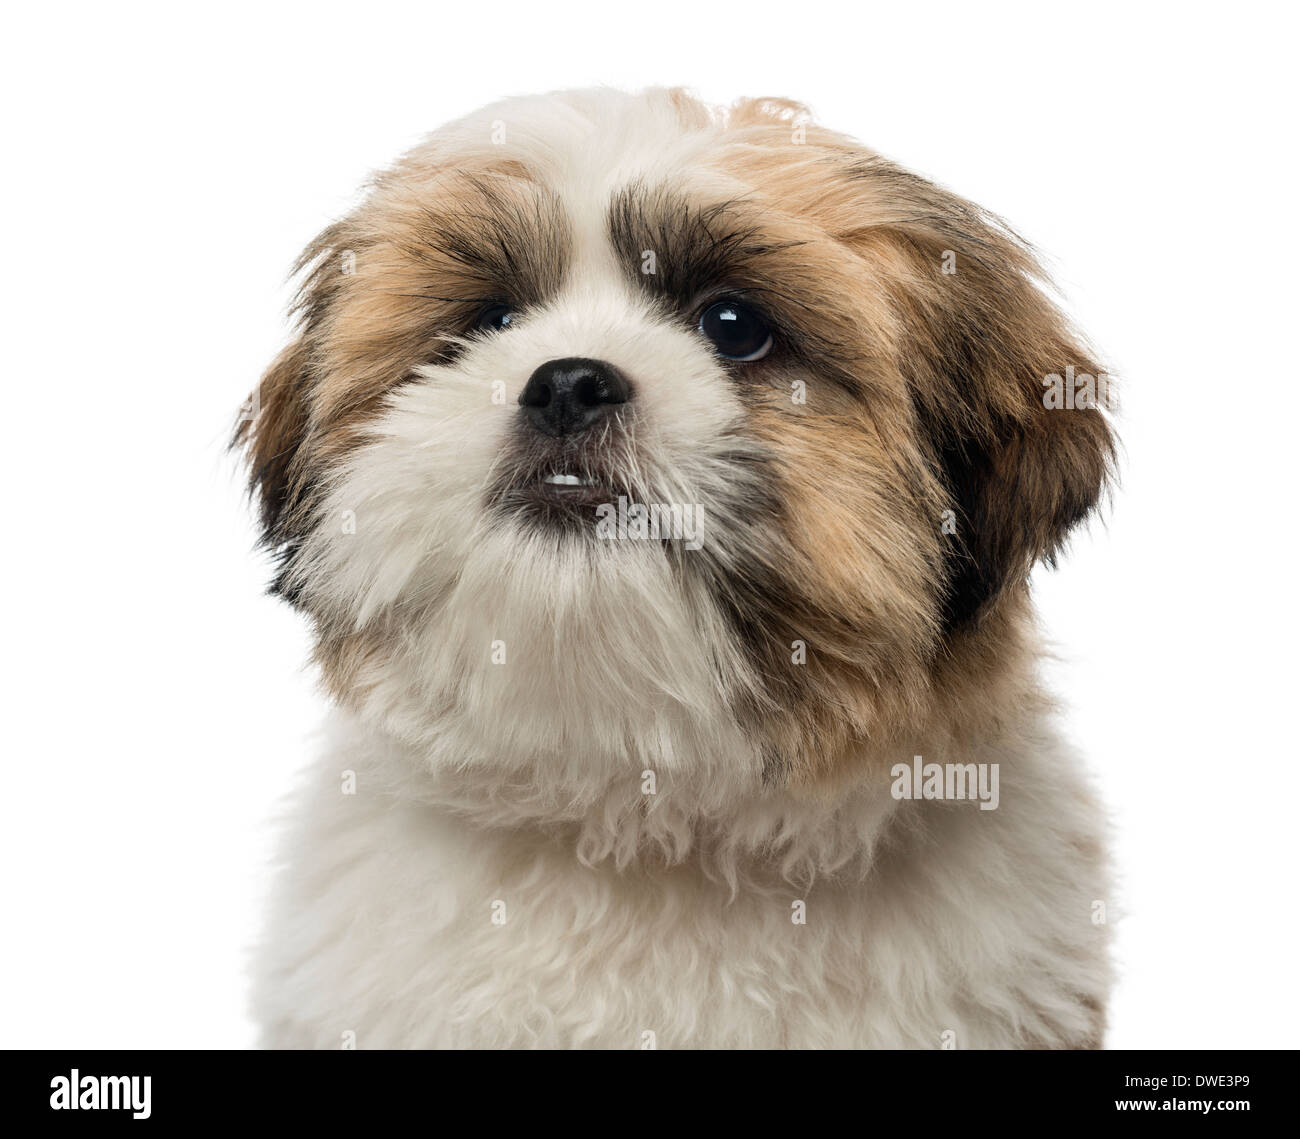 Cute Shih Tzu Puppy Alone Stock Photos Cute Shih Tzu Puppy Alone